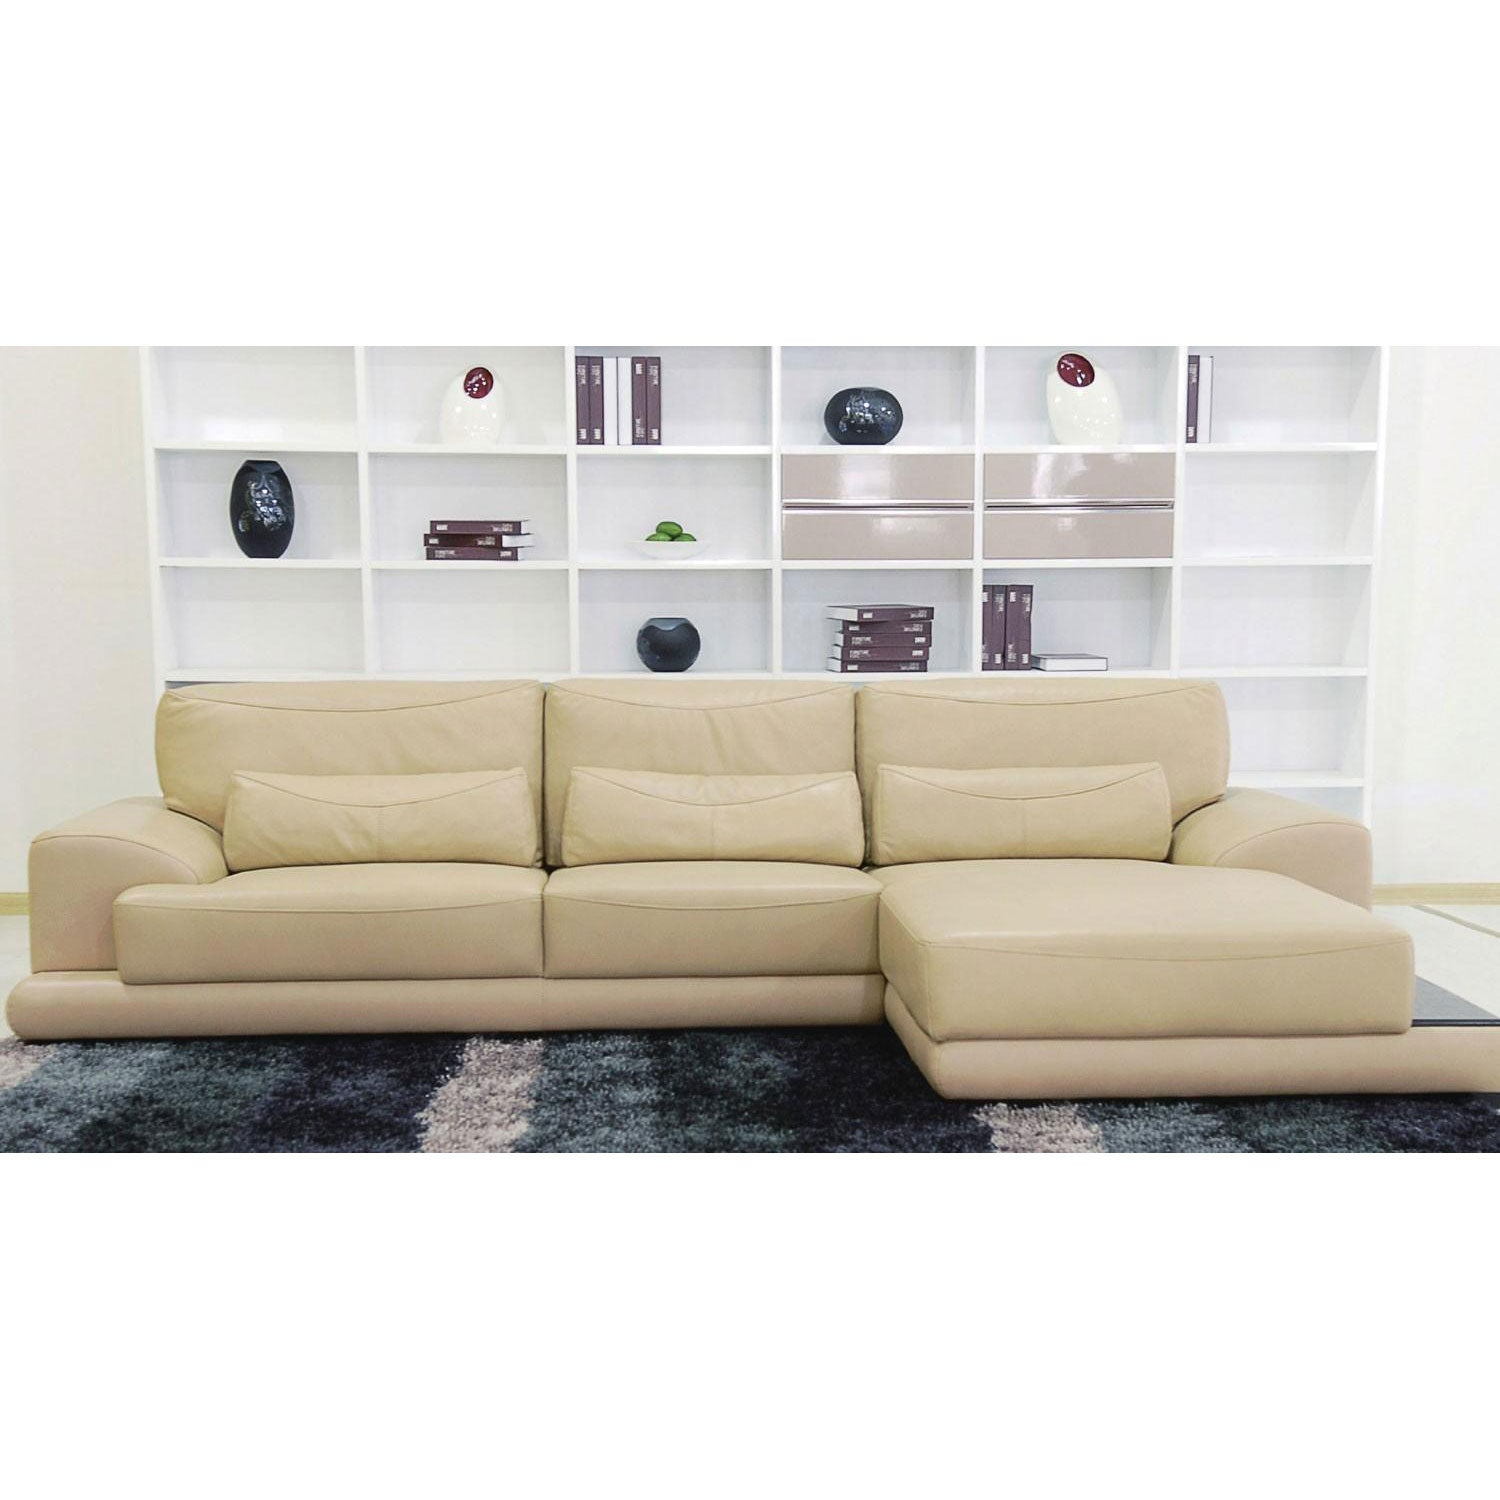 Tosh Furniture Beige Leather Sectional Sofa Free Shipping Today